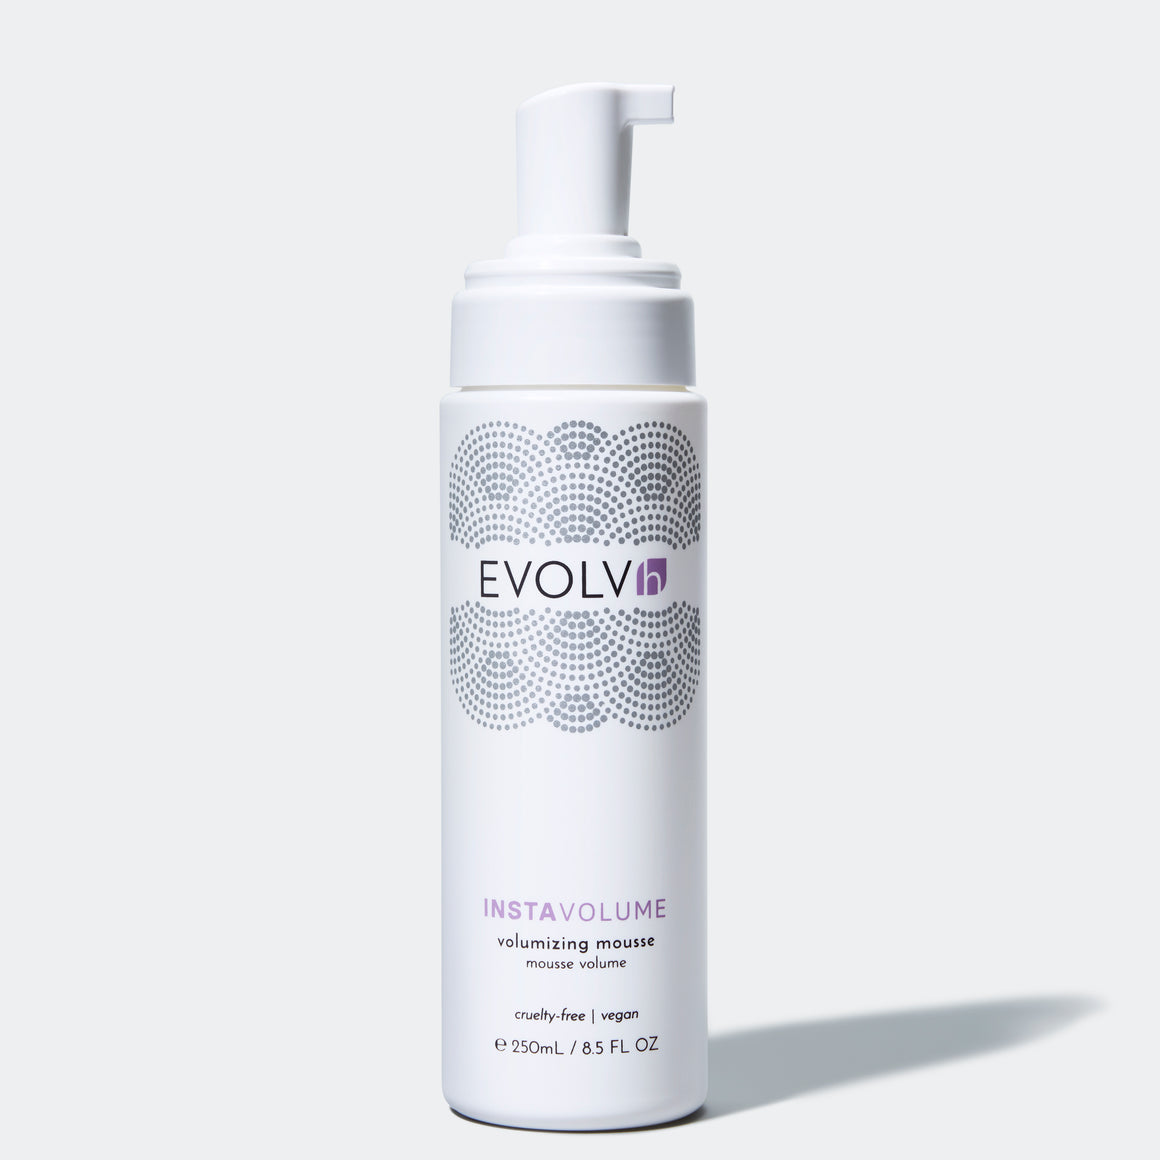 NEW! InstaVolume Volumizing Mousse